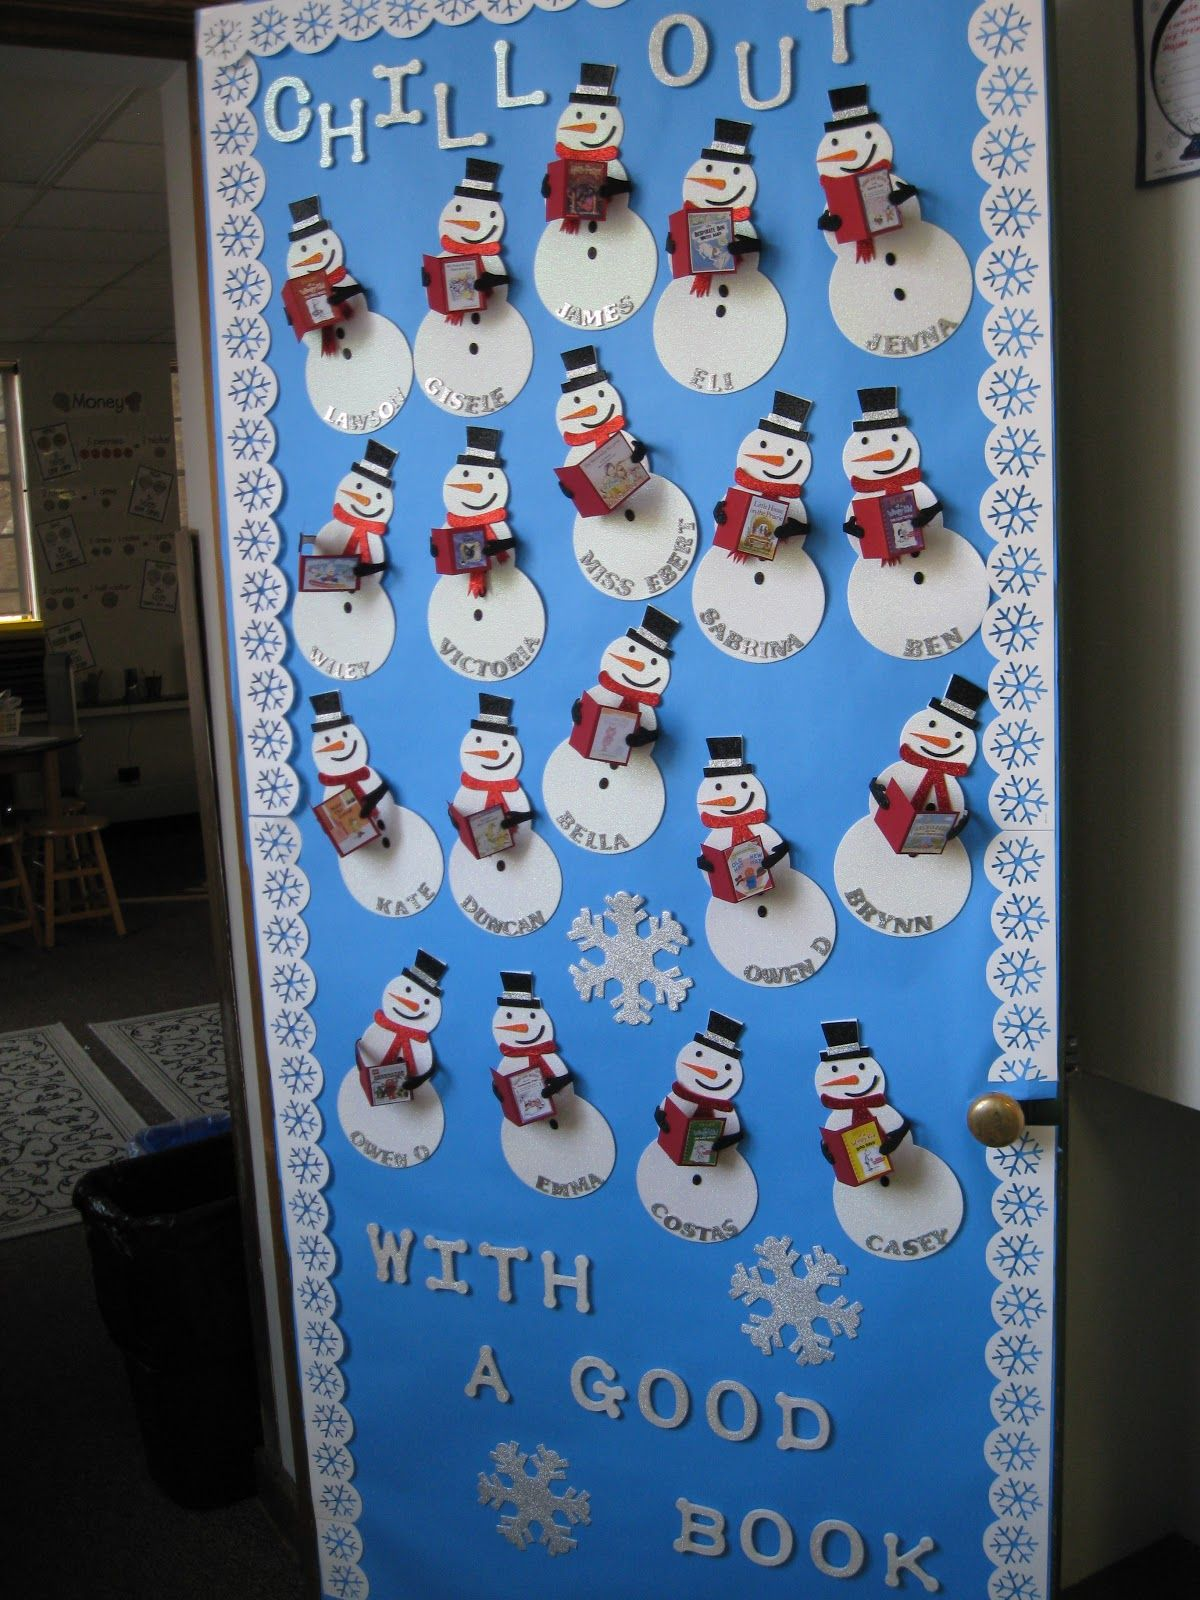 Kleinspiration Holiday Door Decorations for Classrooms and Creative (but Simple) Winter Themed Bulletin Board Ideas! & Kleinspiration: Holiday Door Decorations for Classrooms and Creative ...